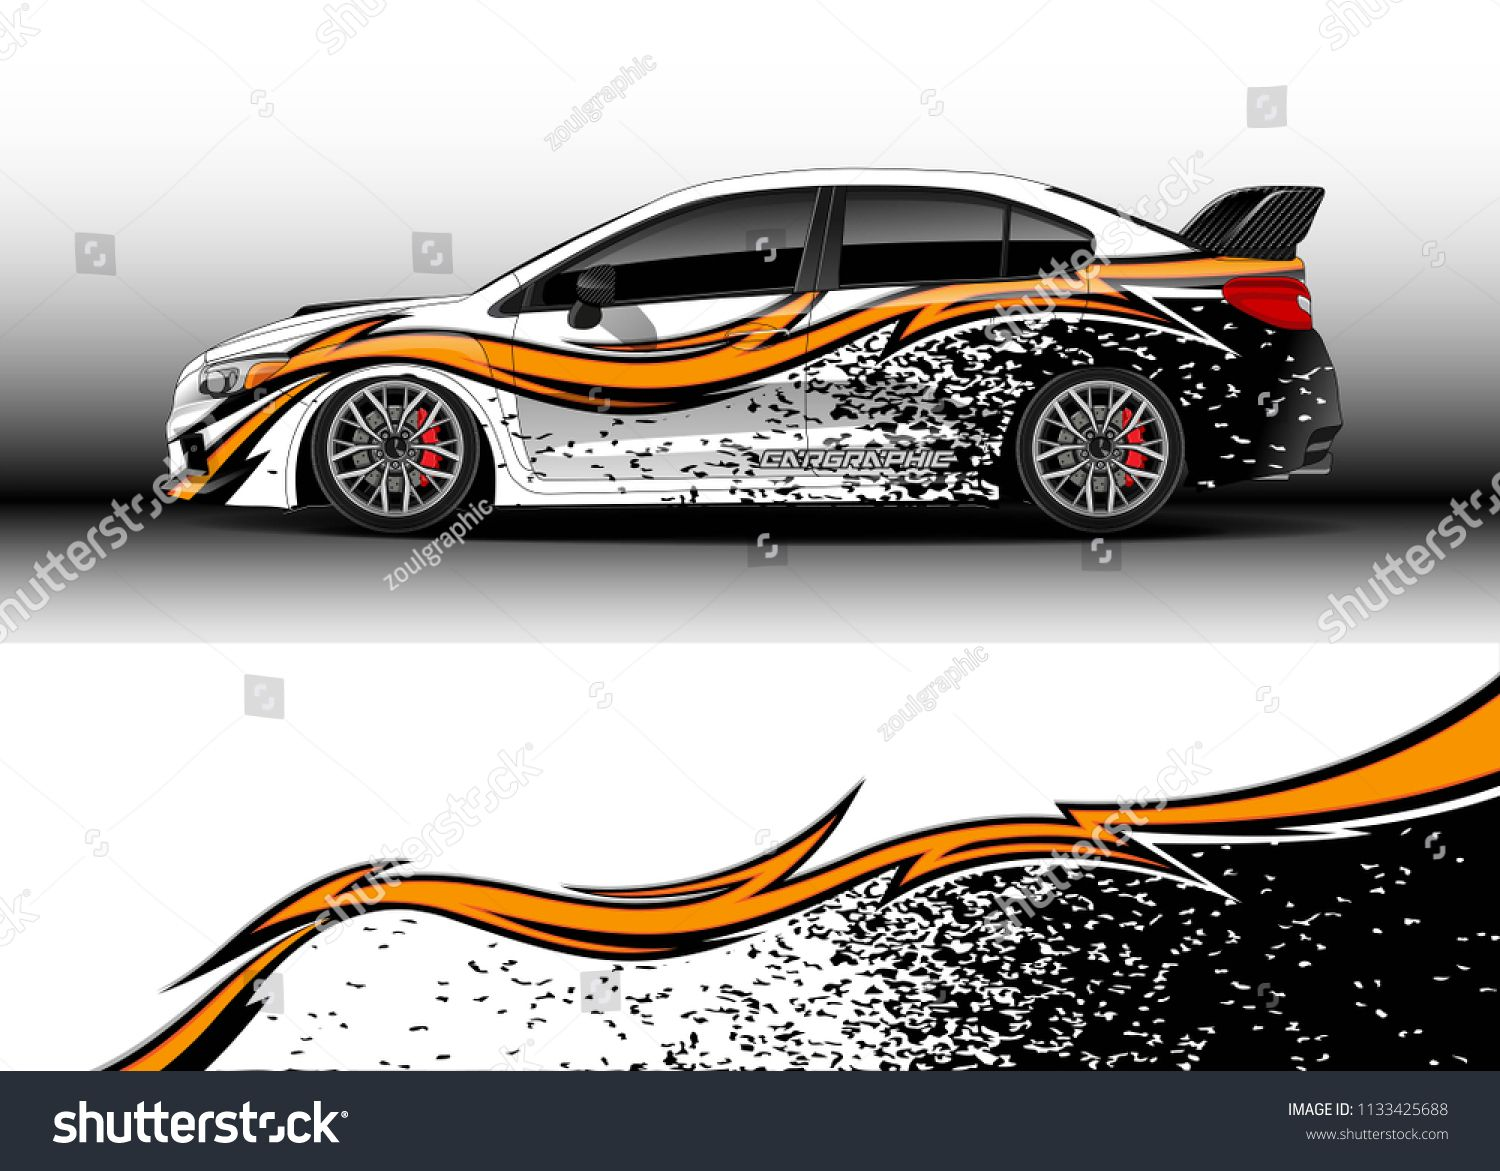 Car Decal Truck And Cargo Van Wrap Vector Graphic Abstract Stripe Designs For Drift Livery Car Advertisement And Branding Truck Cargo Van Wrap Cool Cars [ 1171 x 1500 Pixel ]